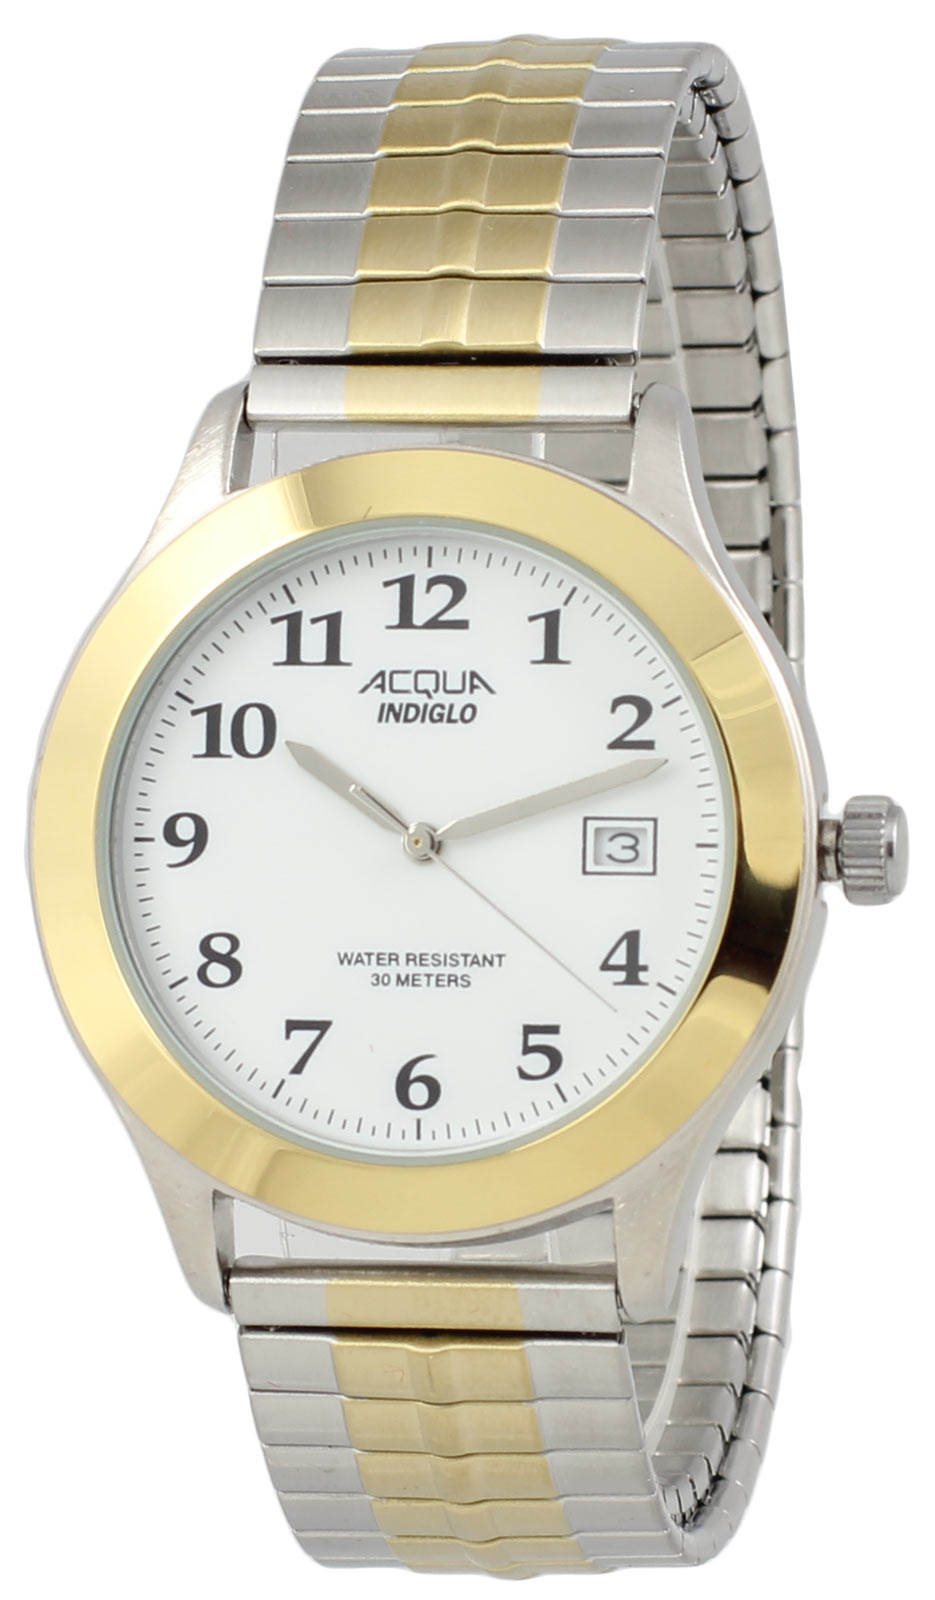 Acqua by Timex Men's Analog Round Two-tone Watch E